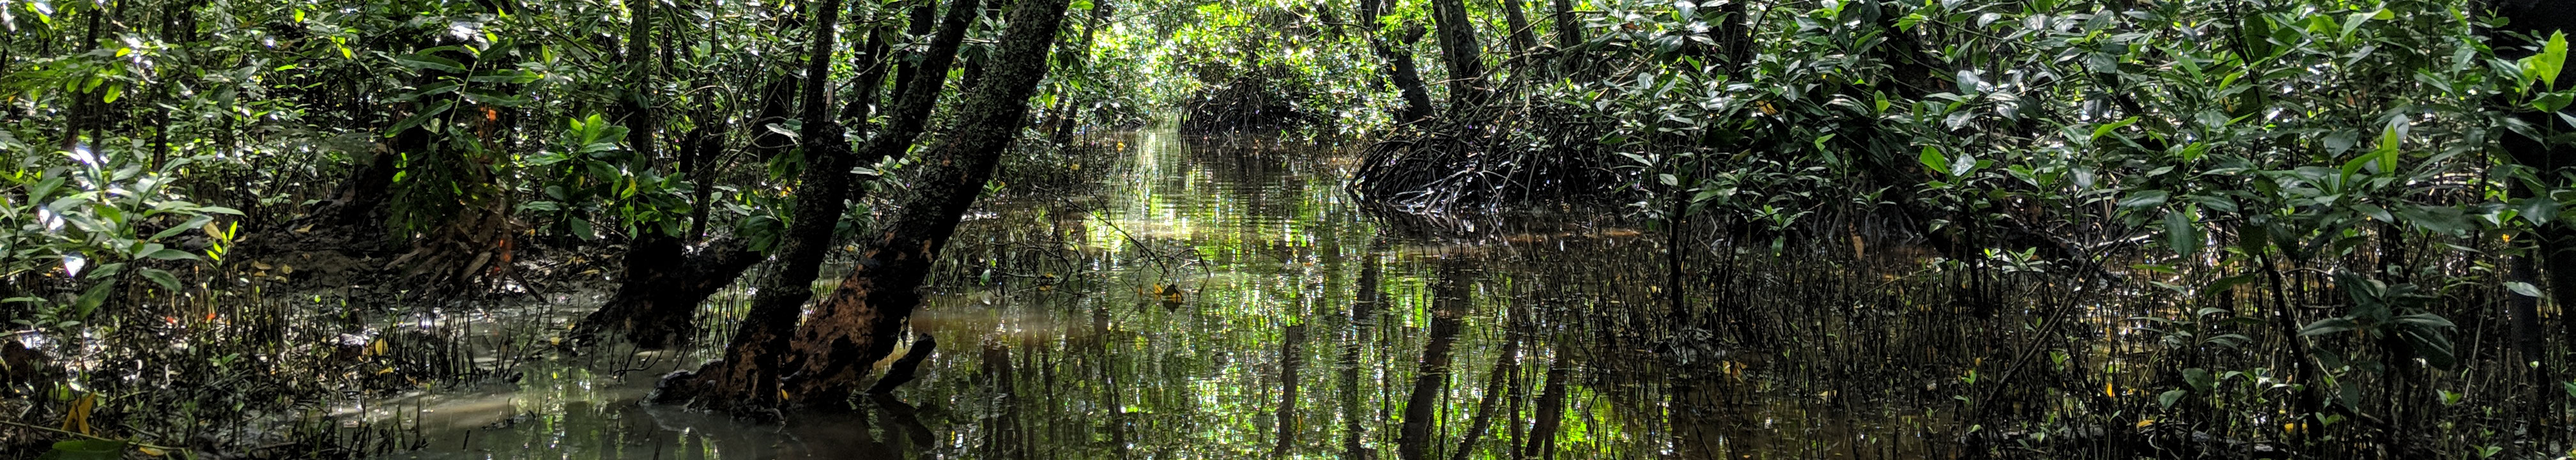 Jungle with water on the floor.